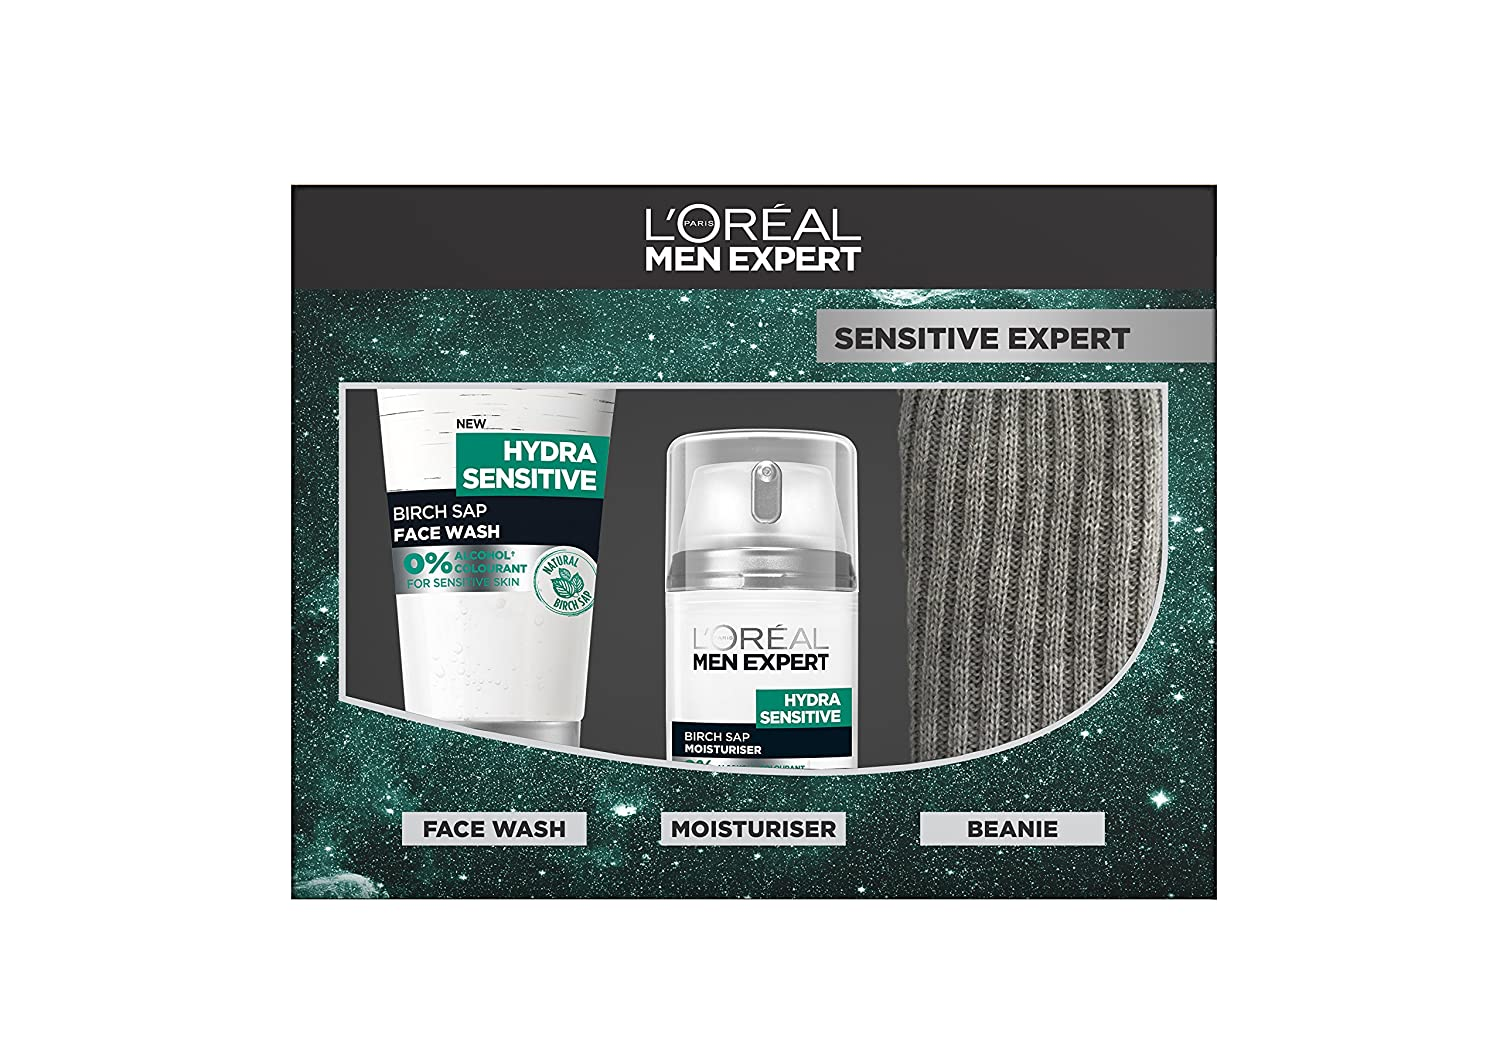 L'Oreal Men Expert Sensitive Deodorant 250ml L'Oreal 3600523462384